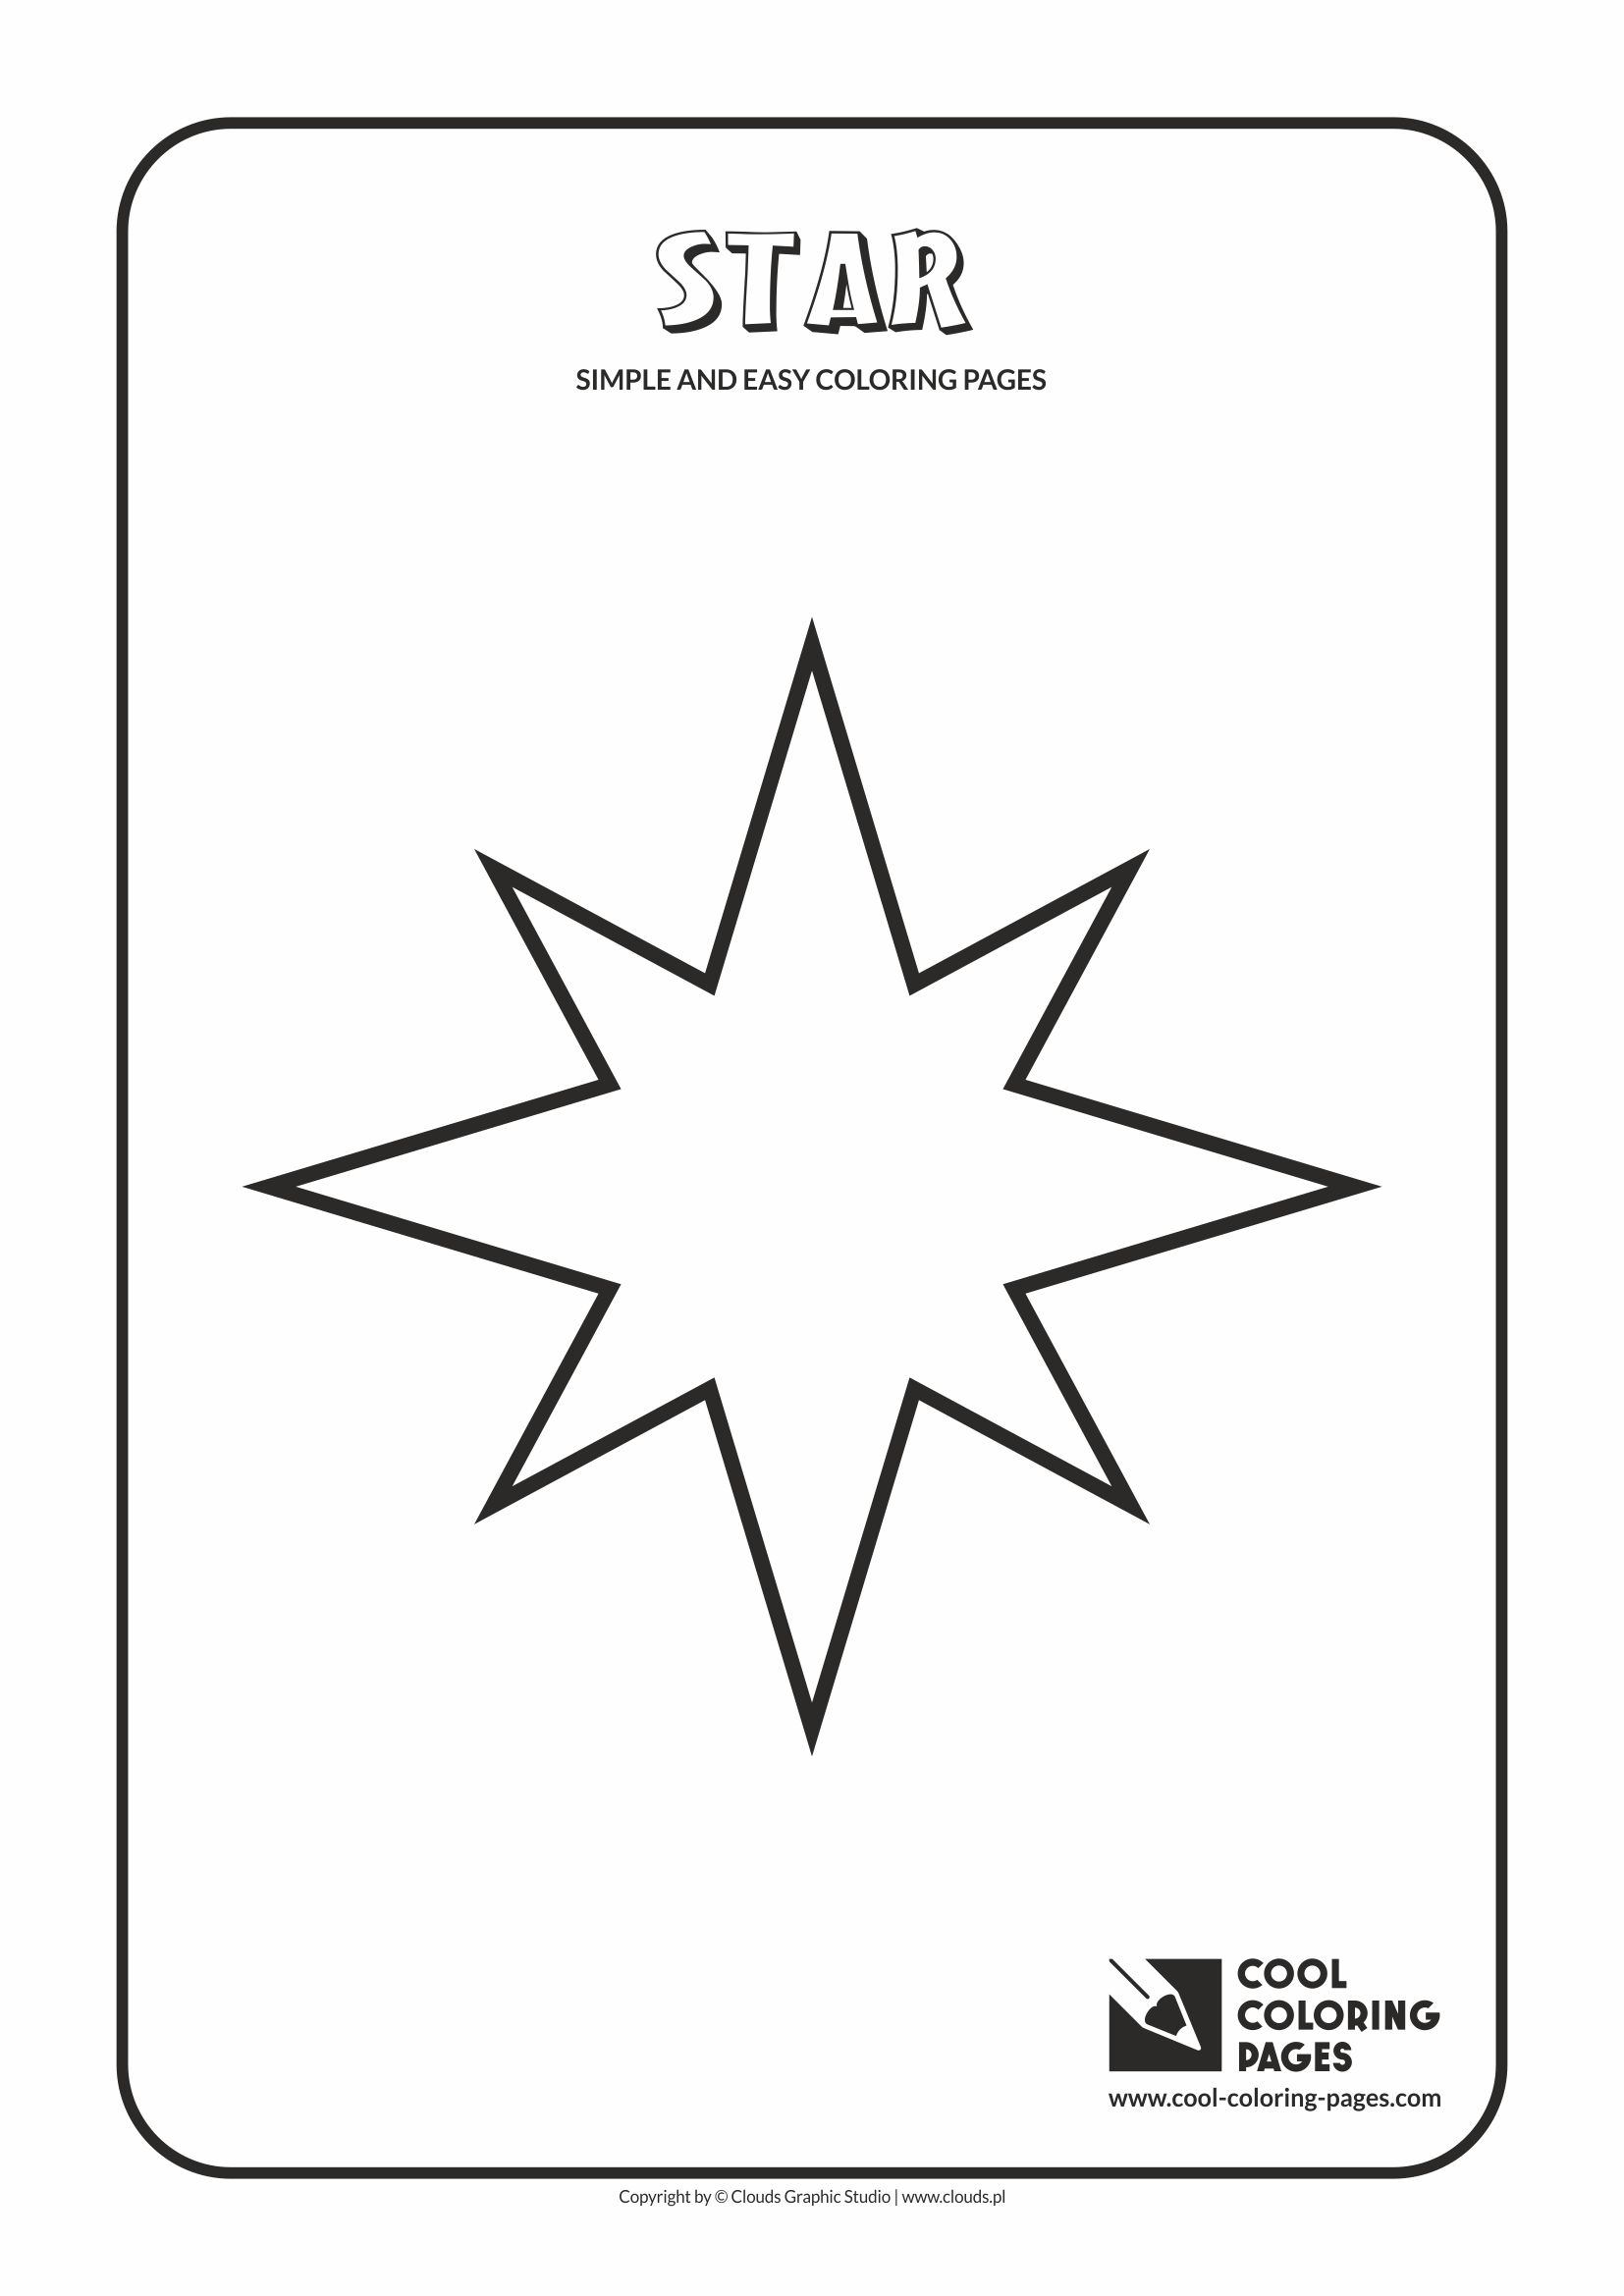 Simple and easy coloring pages for toddlers - Star